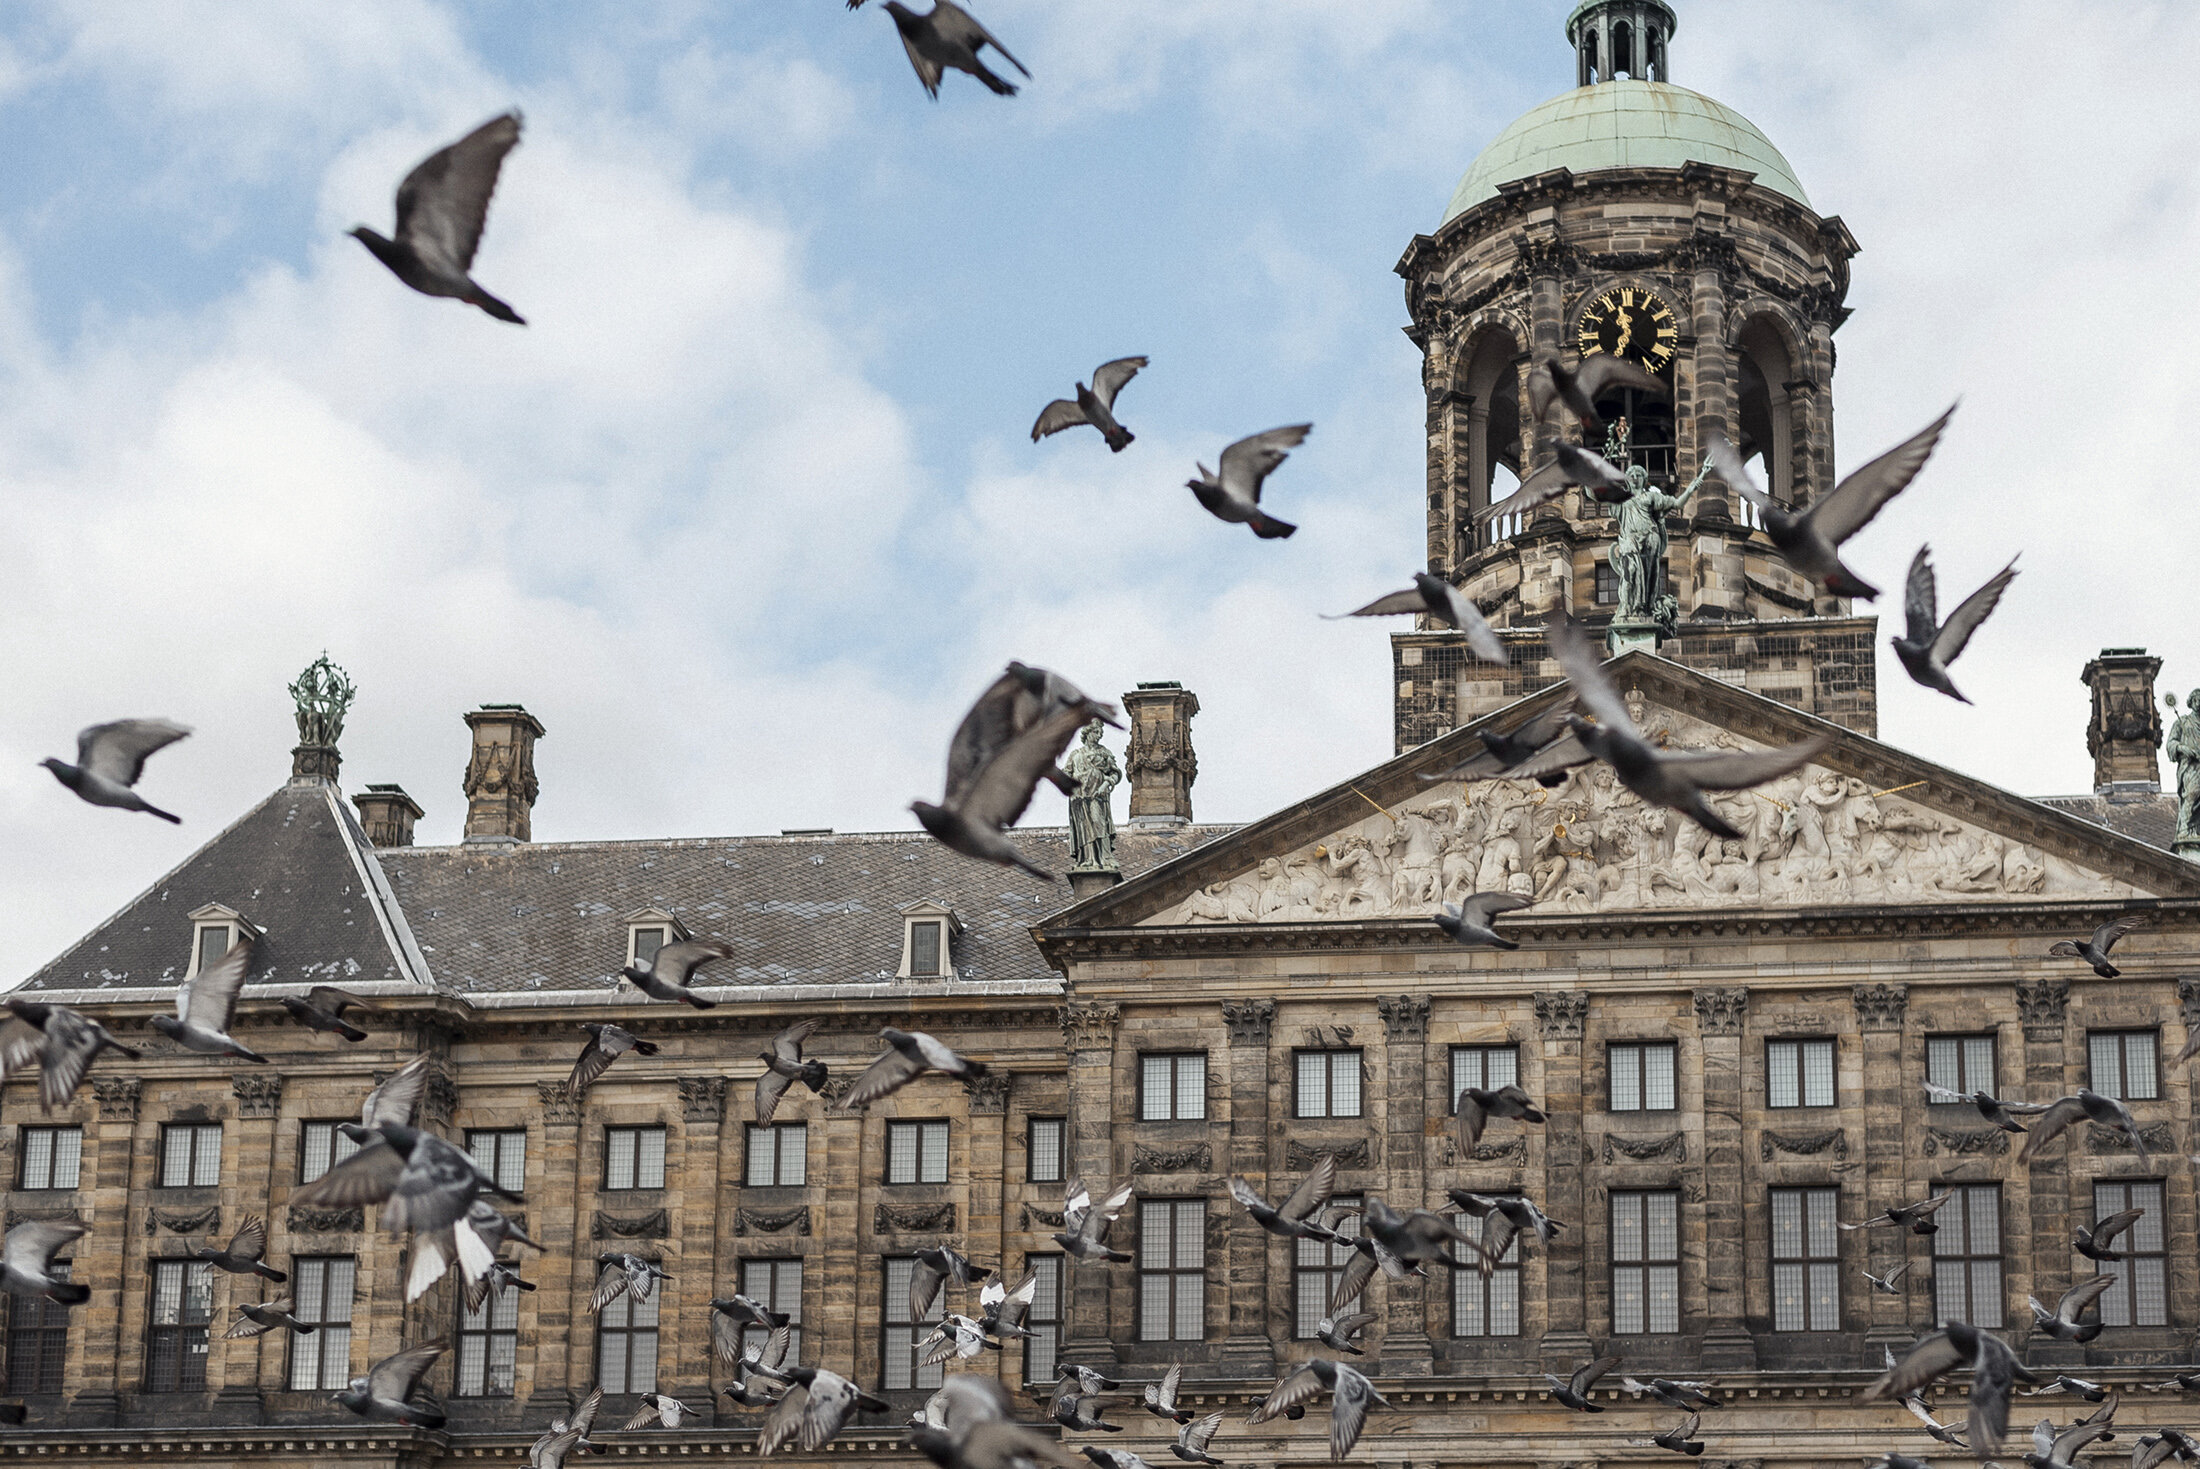 Dam Square Amsterdam birds flying pigeons